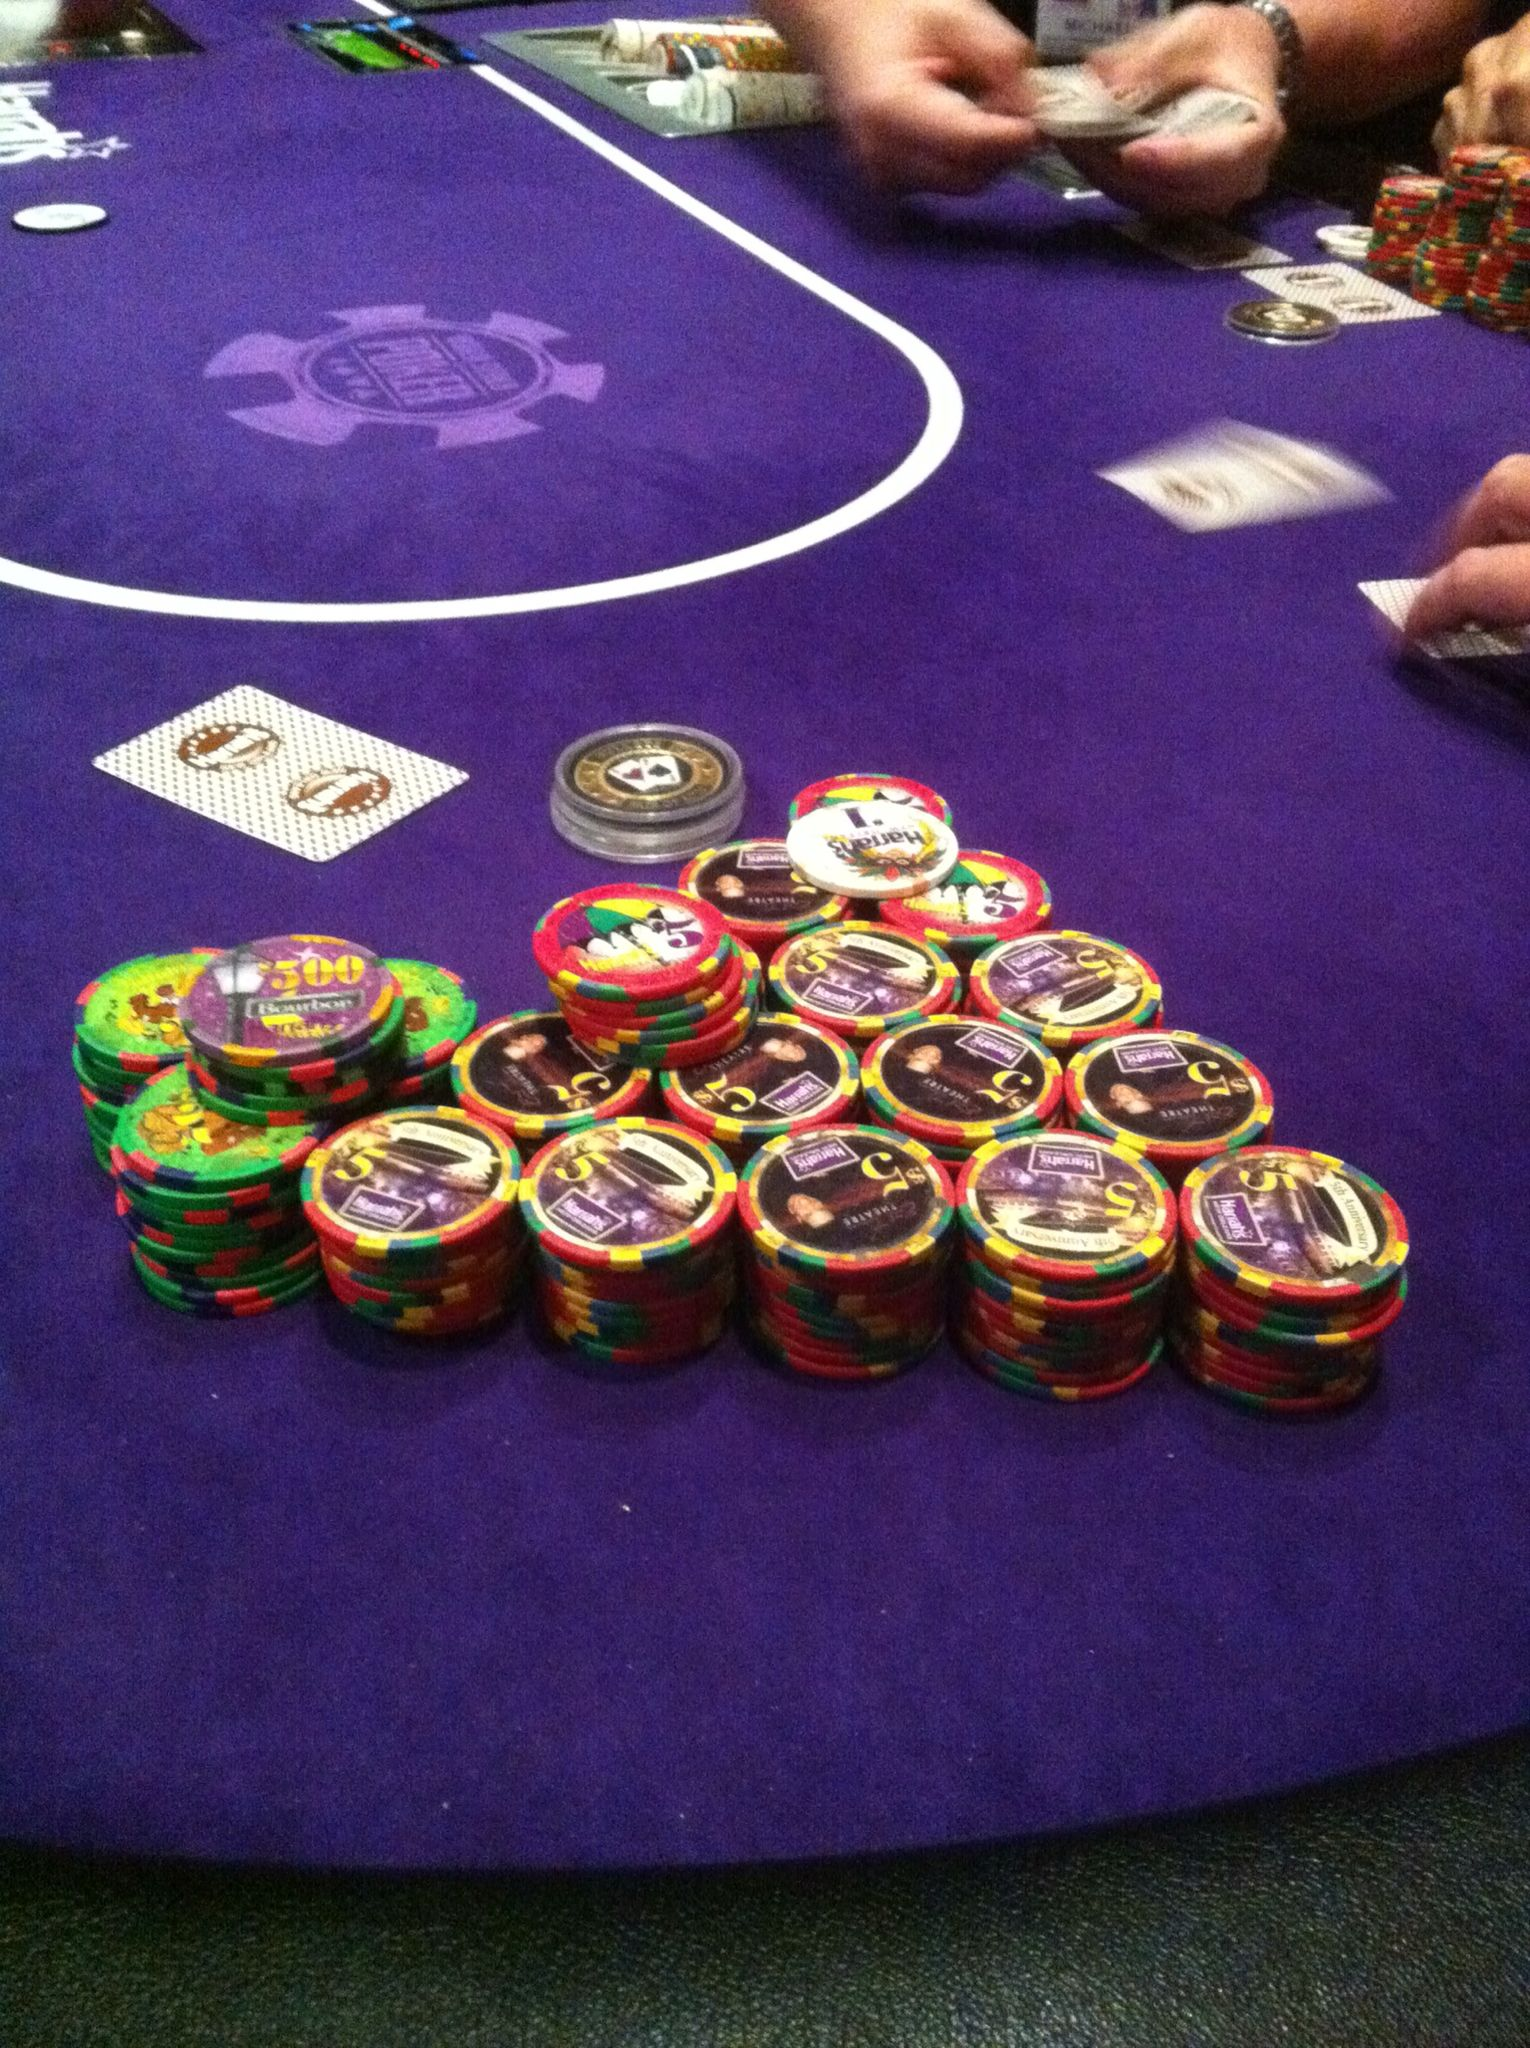 Pin by Martin Kersten on Poker Poker, Game theory, Chips